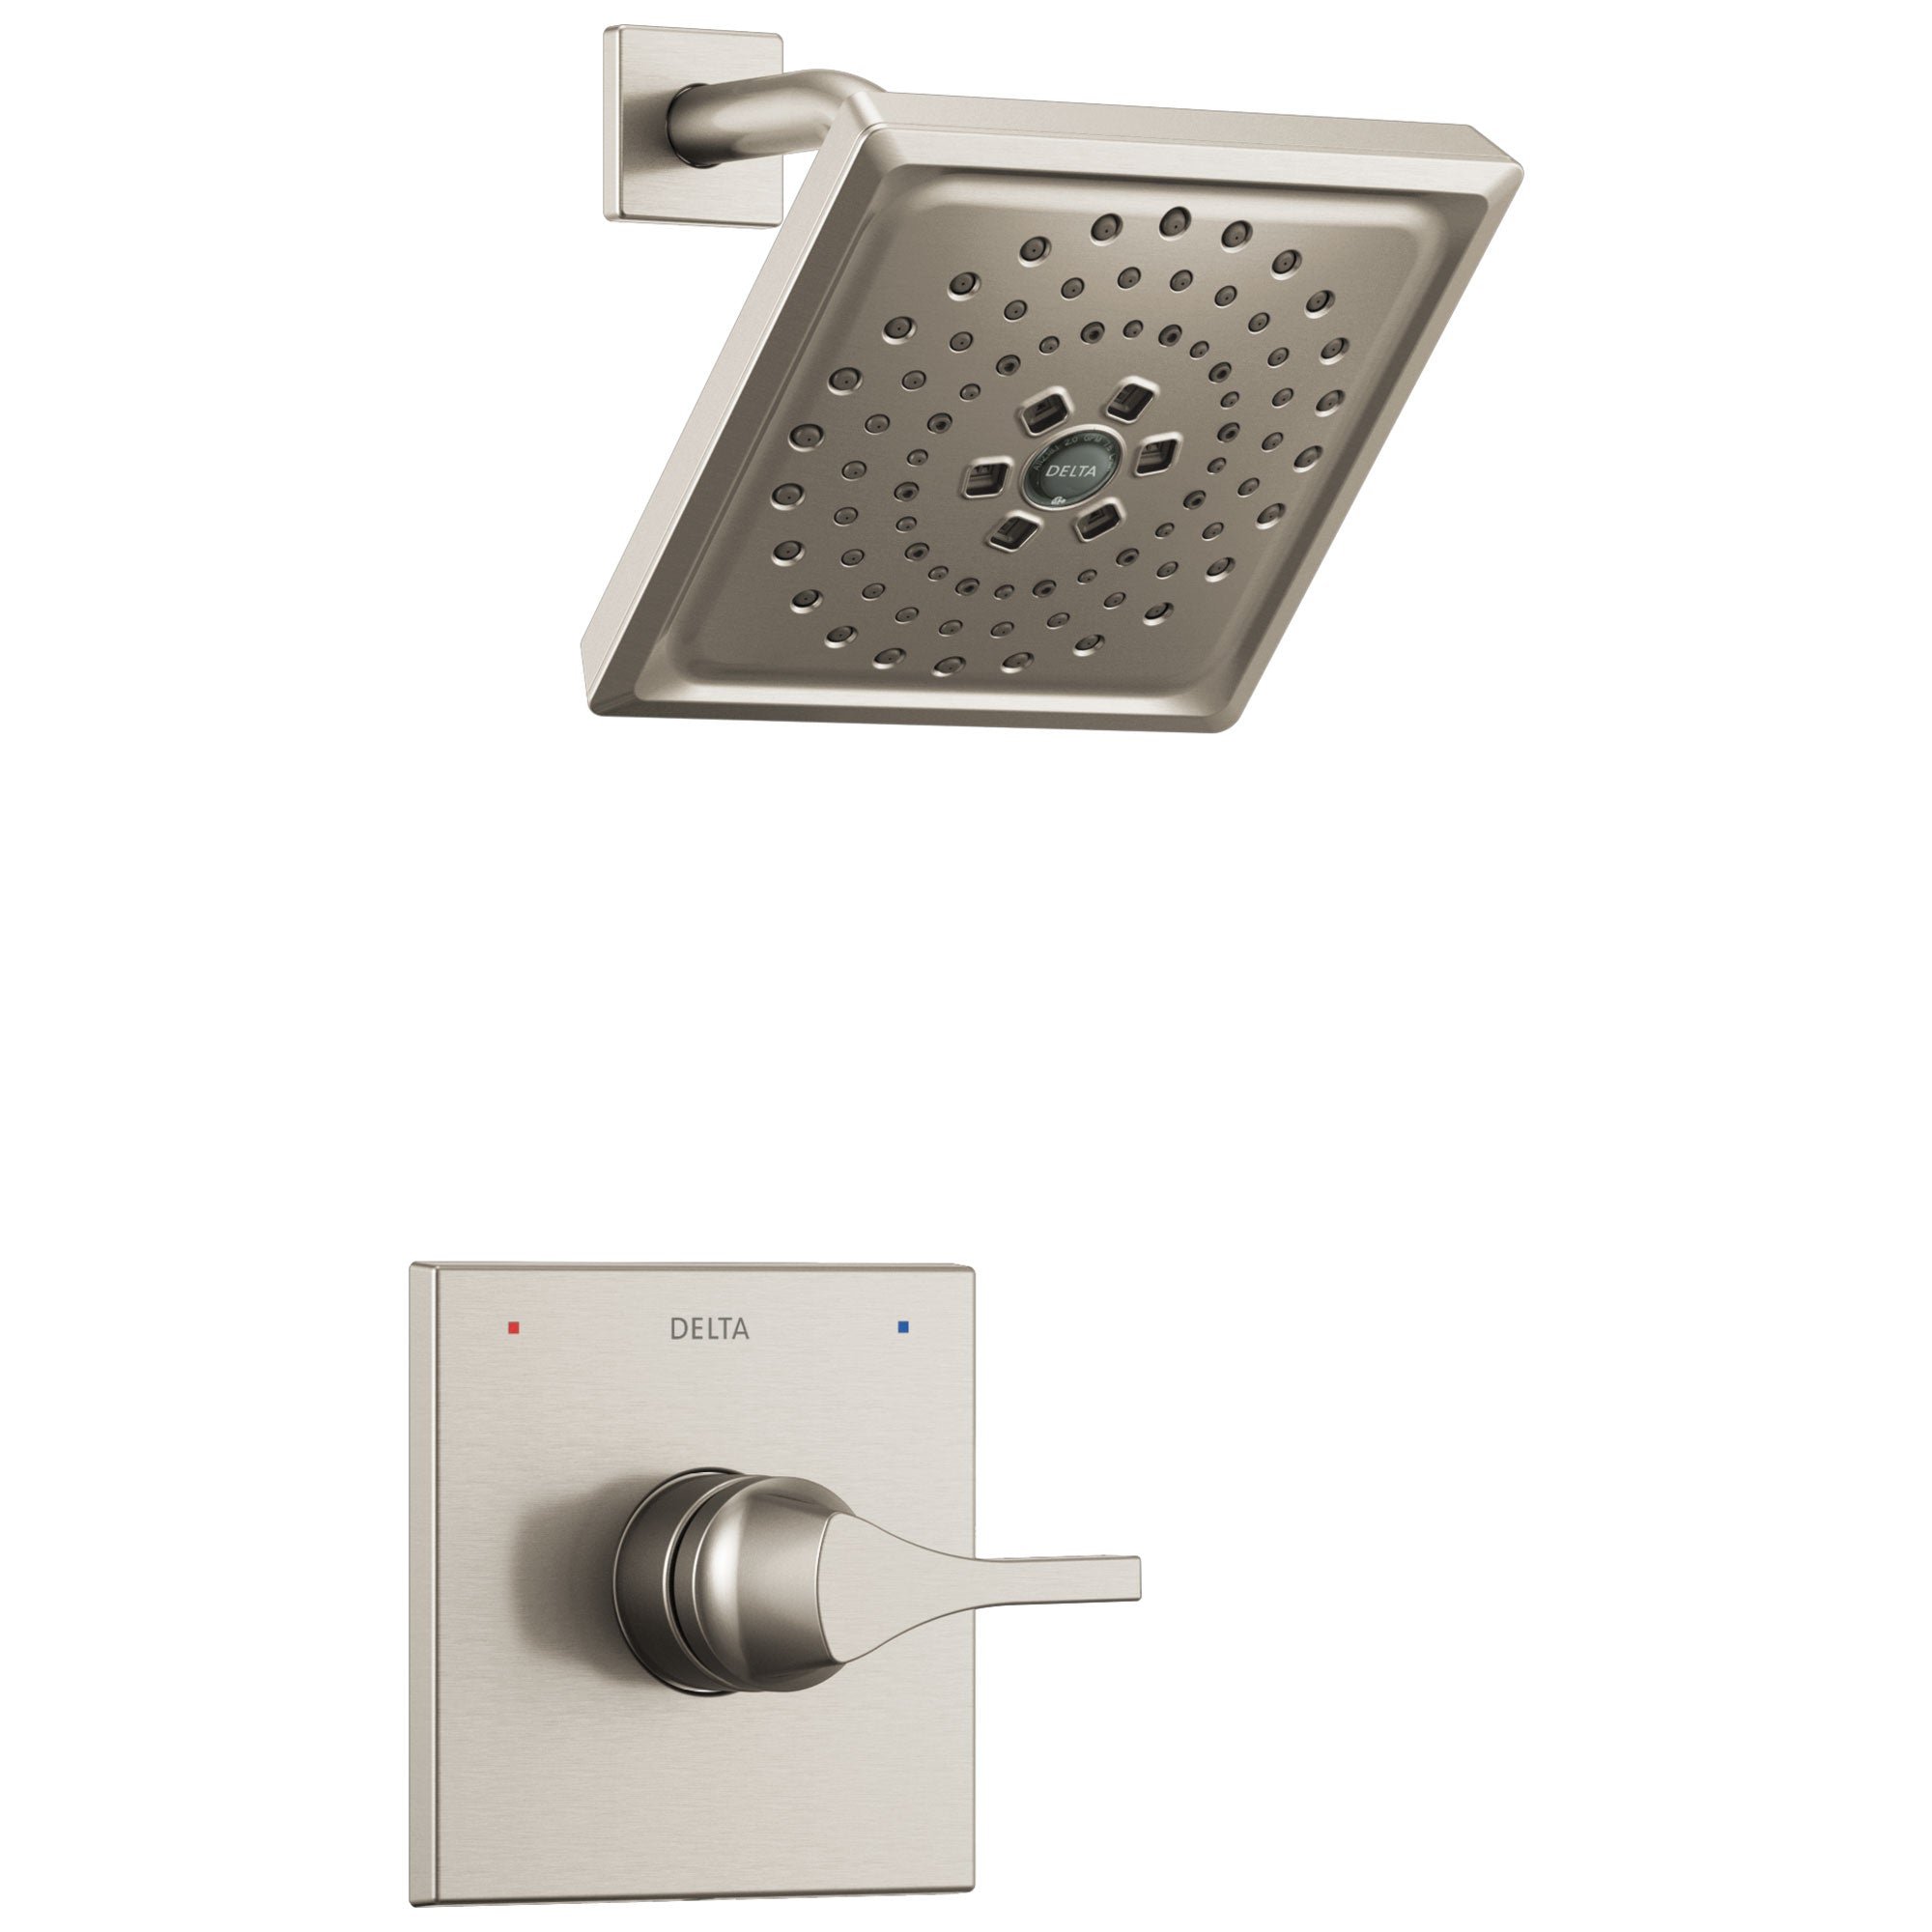 Delta Zura Collection Stainless Steel Finish Modern Single Handle Monitor 14 Shower only Faucet Includes Trim Kit and Rough-in Valve without Stops D2024V